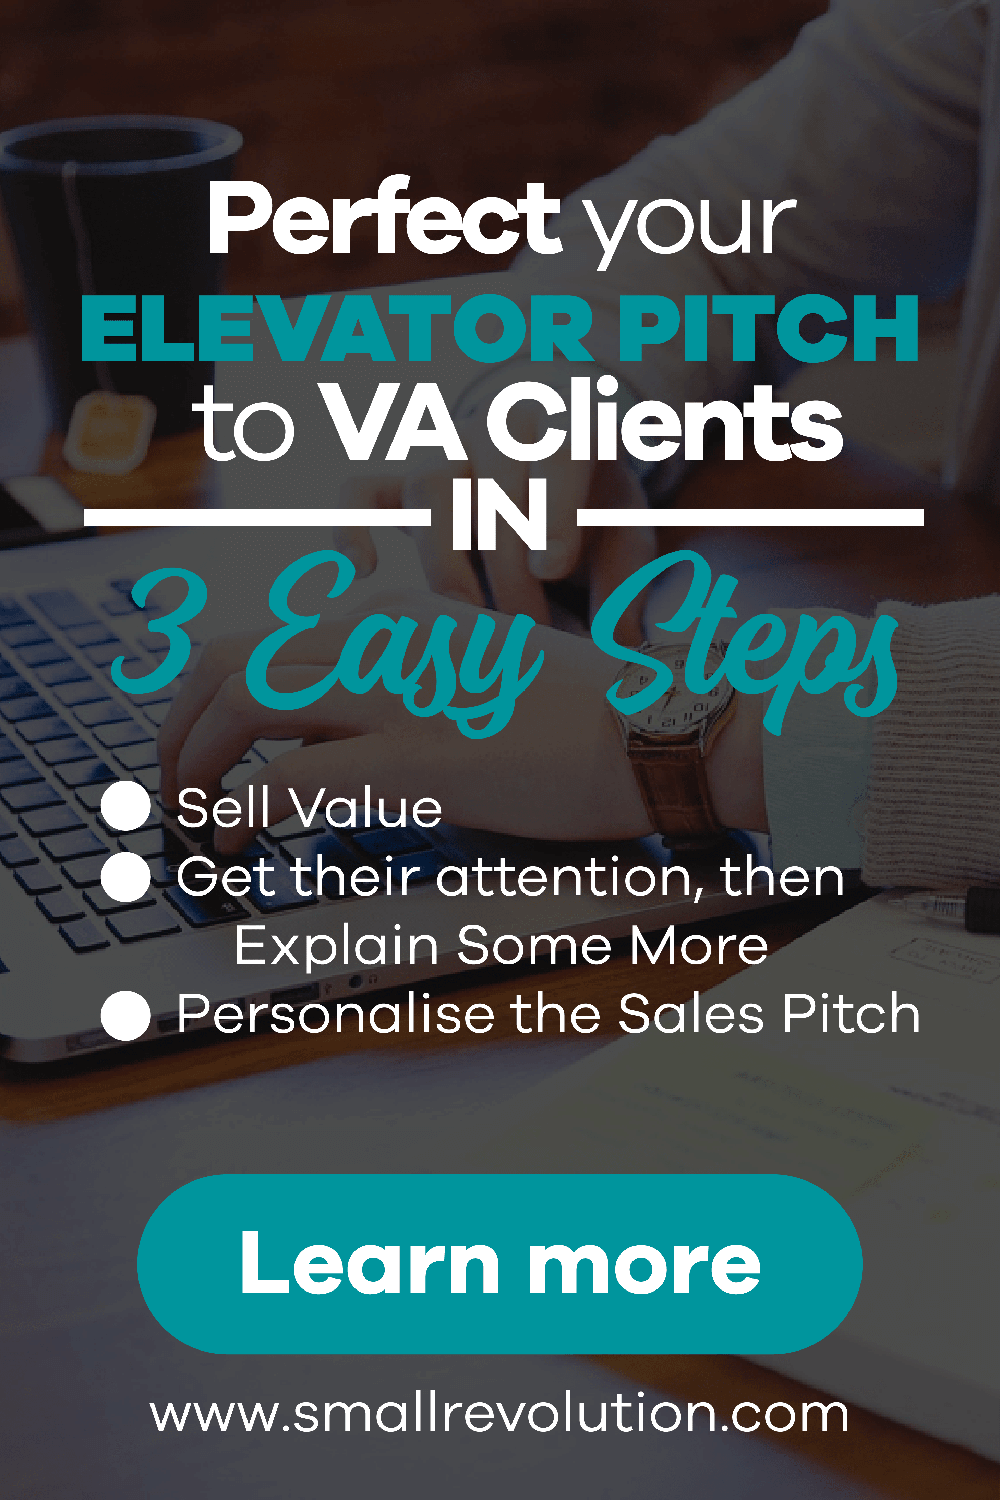 Pefect elevator pitch to VA clients in 3 easy steps